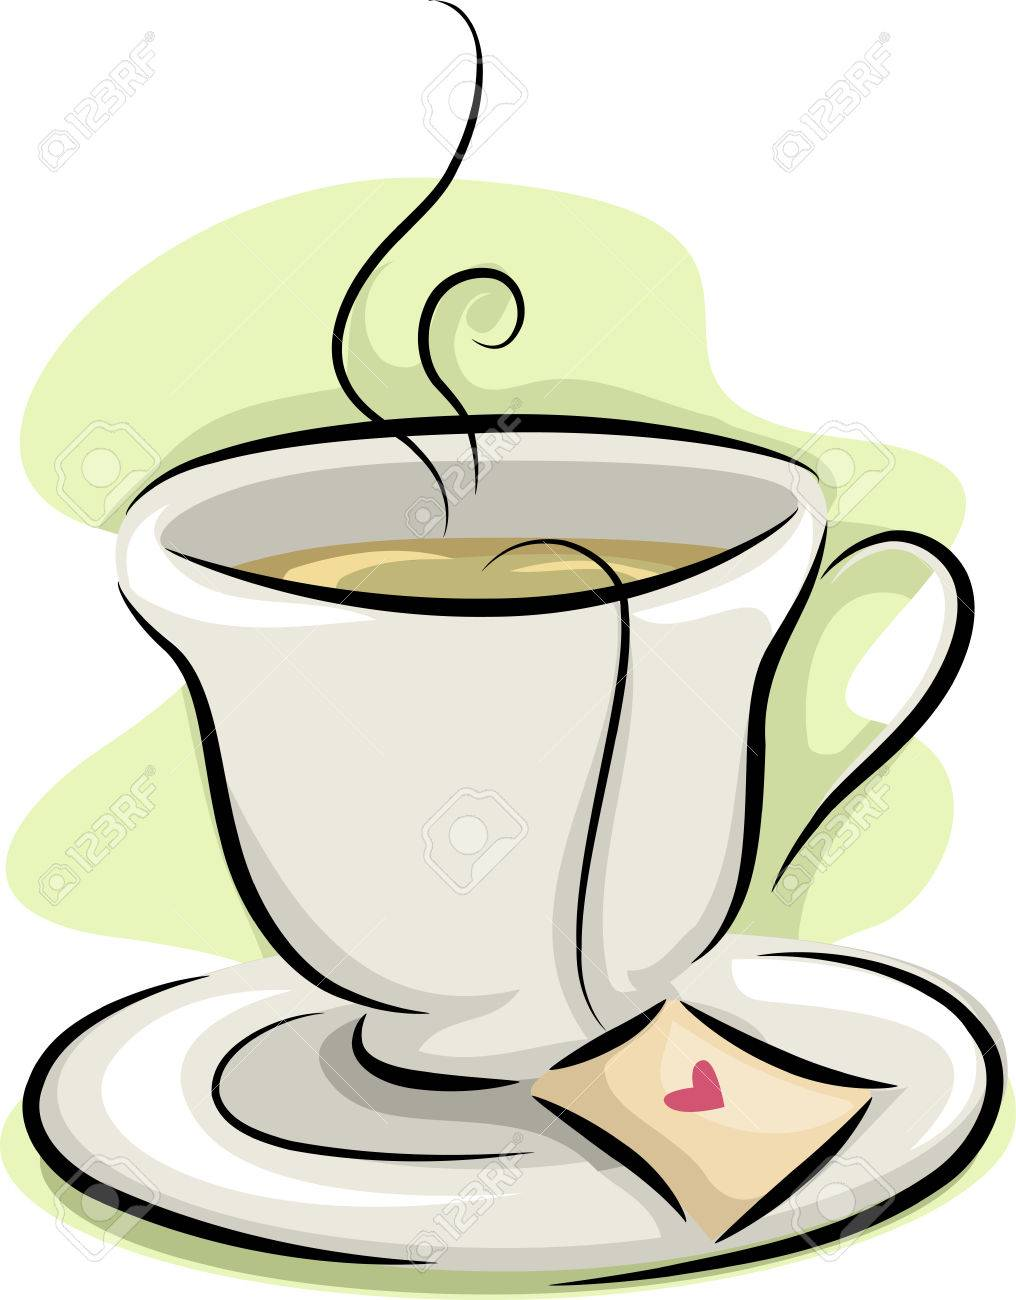 Illustration Featuring A Hot Cup Of Tea Stock Photo Picture And